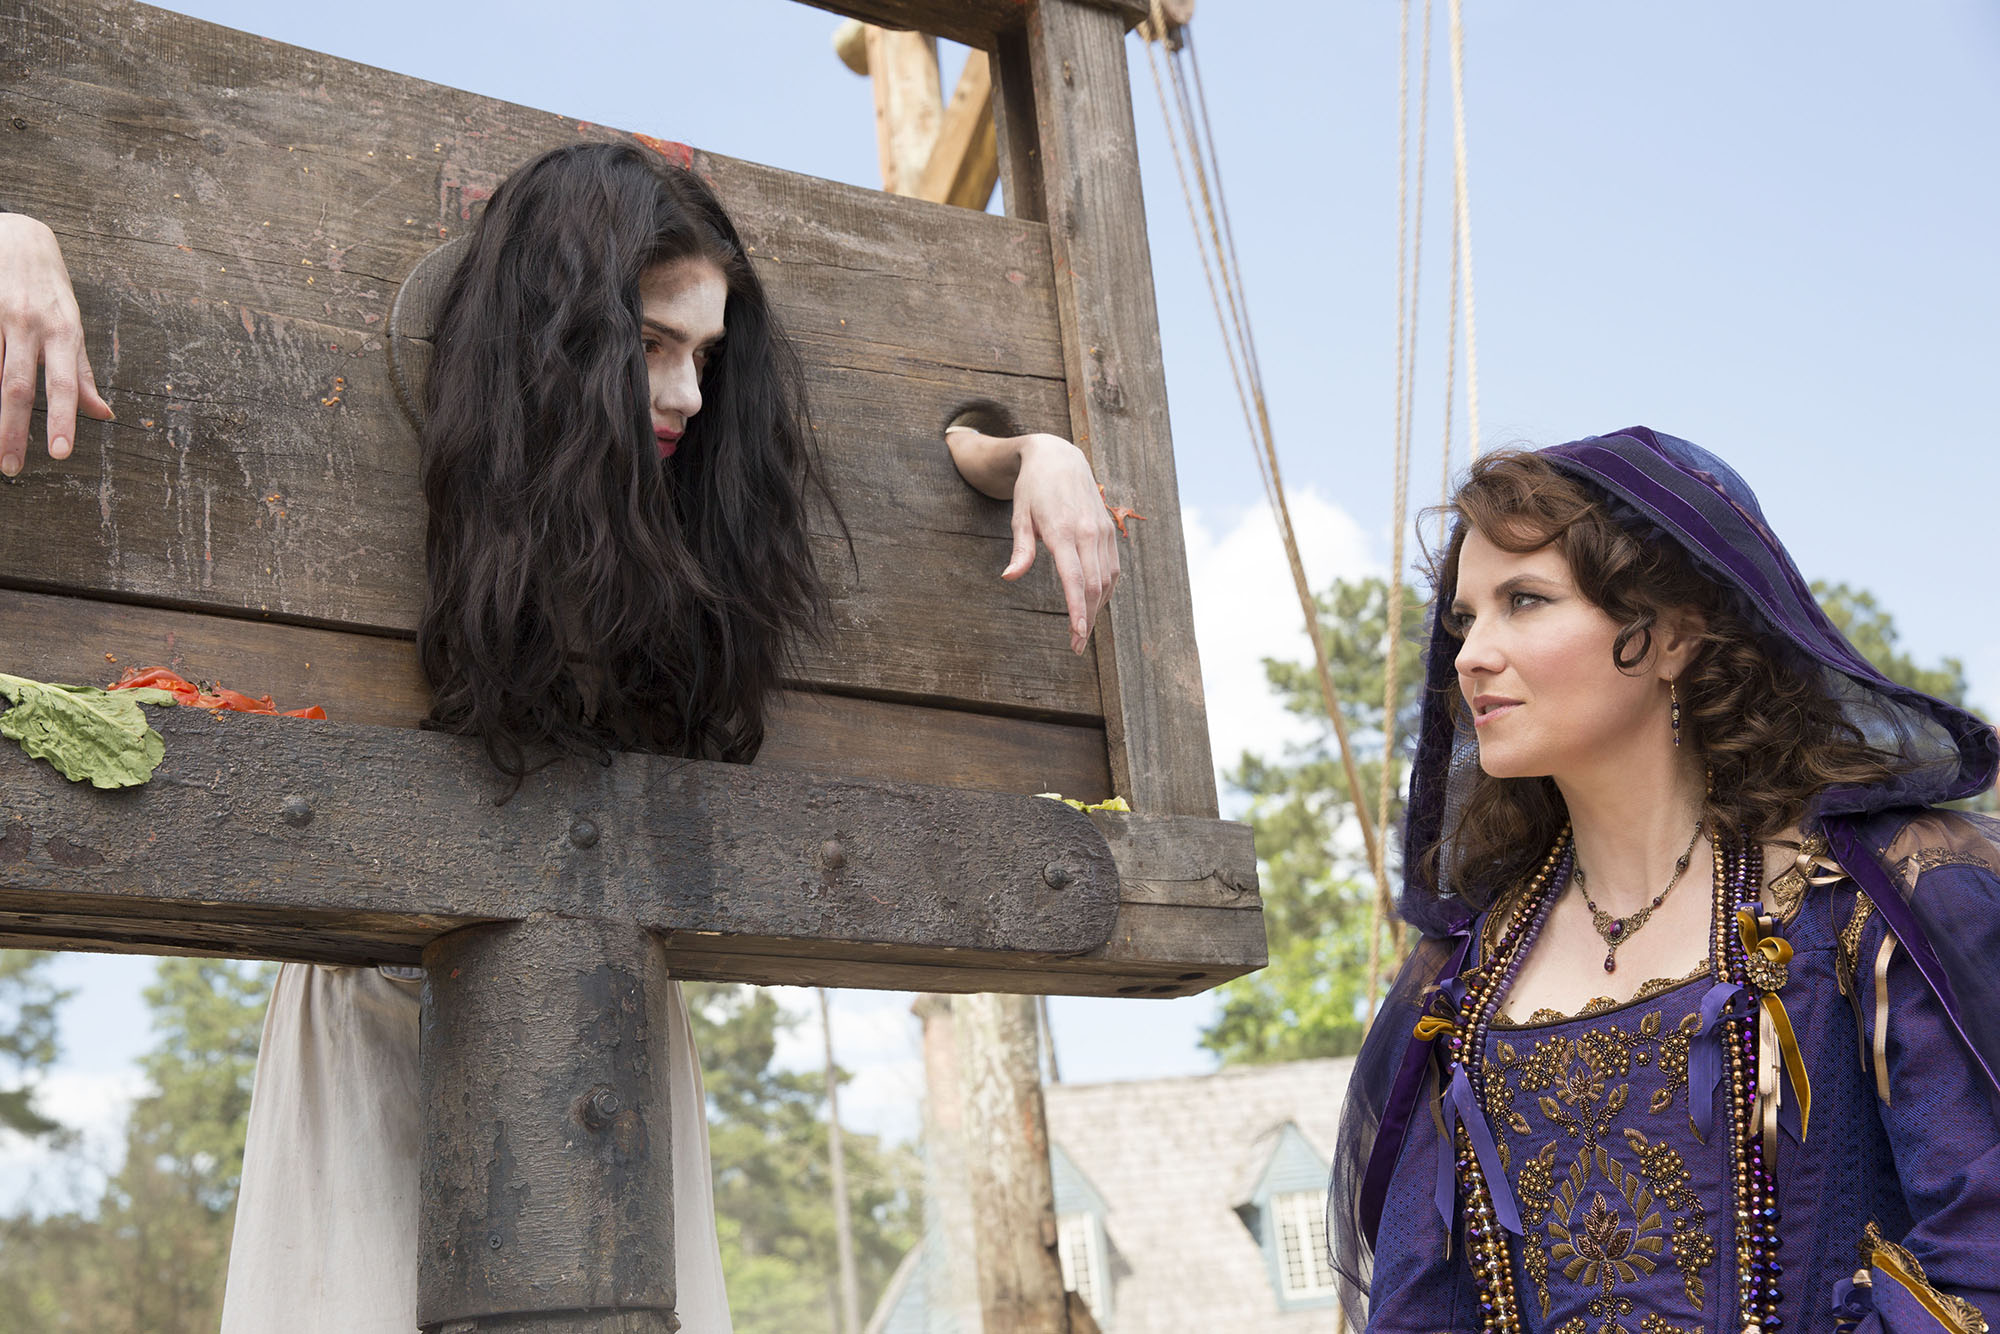 L R Janet Montgomery as Mary Sibley and Lucy Lawless as Countess Marburg - Image Gallery, Preview, and Sneak Peek of Salem Episode 2.11 - On Earth as in Hell